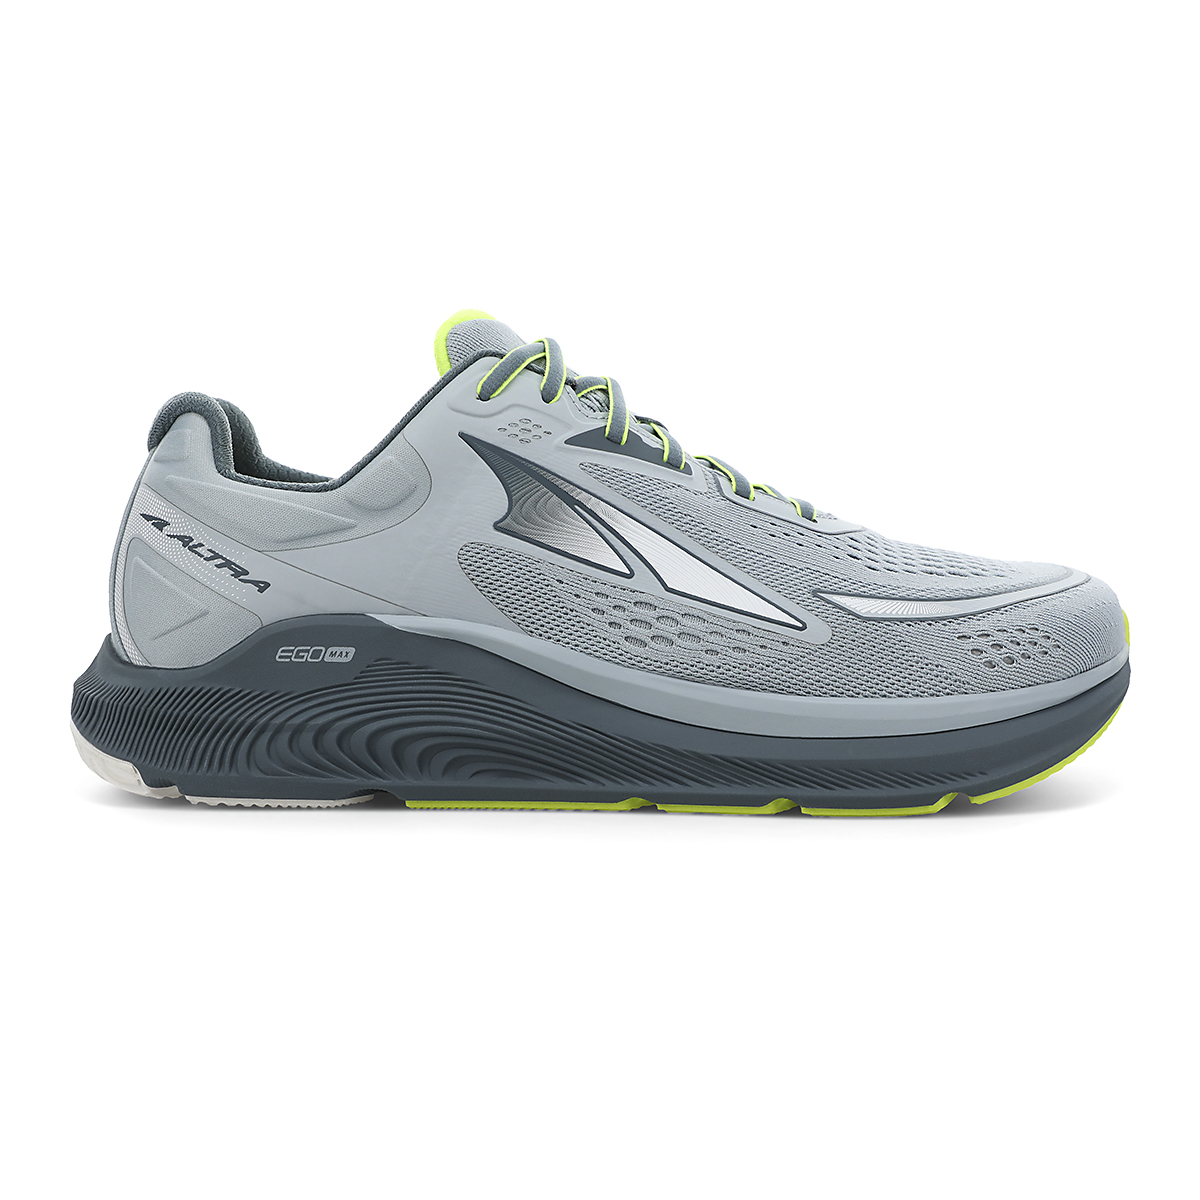 Men's Altra Paradigm 6 Running Shoe - Color: Gray/Lime - Size: 7 - Width: Regular, Gray/Lime, large, image 1